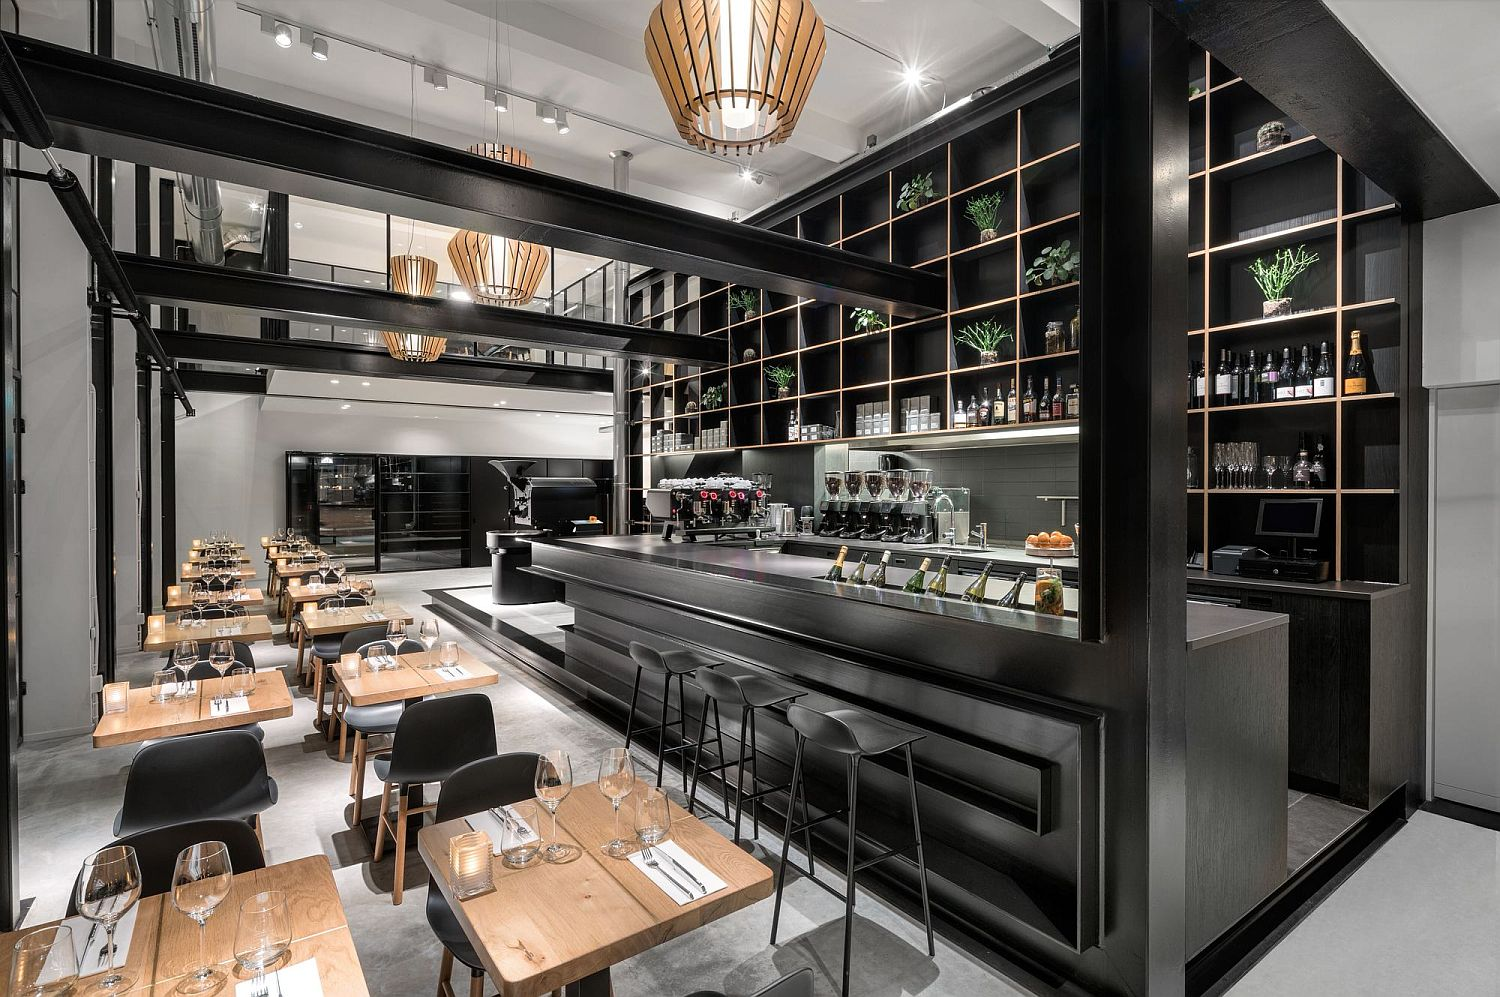 Dark metallic structure defines the new areas of the cafe